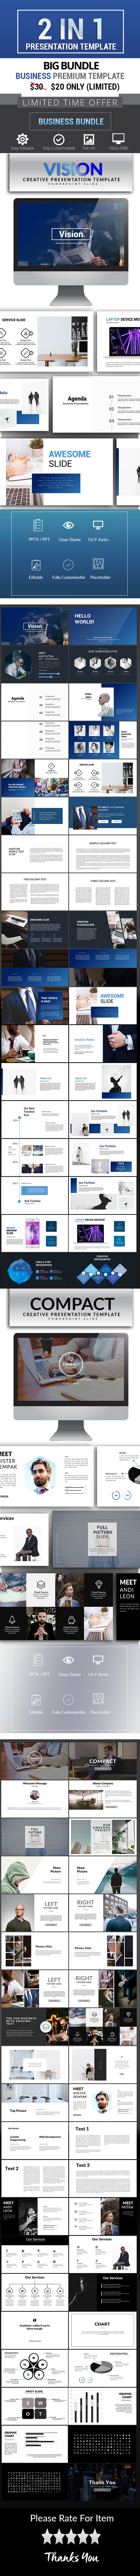 GraphicRiver 2 in 1 Bundle Business Powerpoint Template 20804721